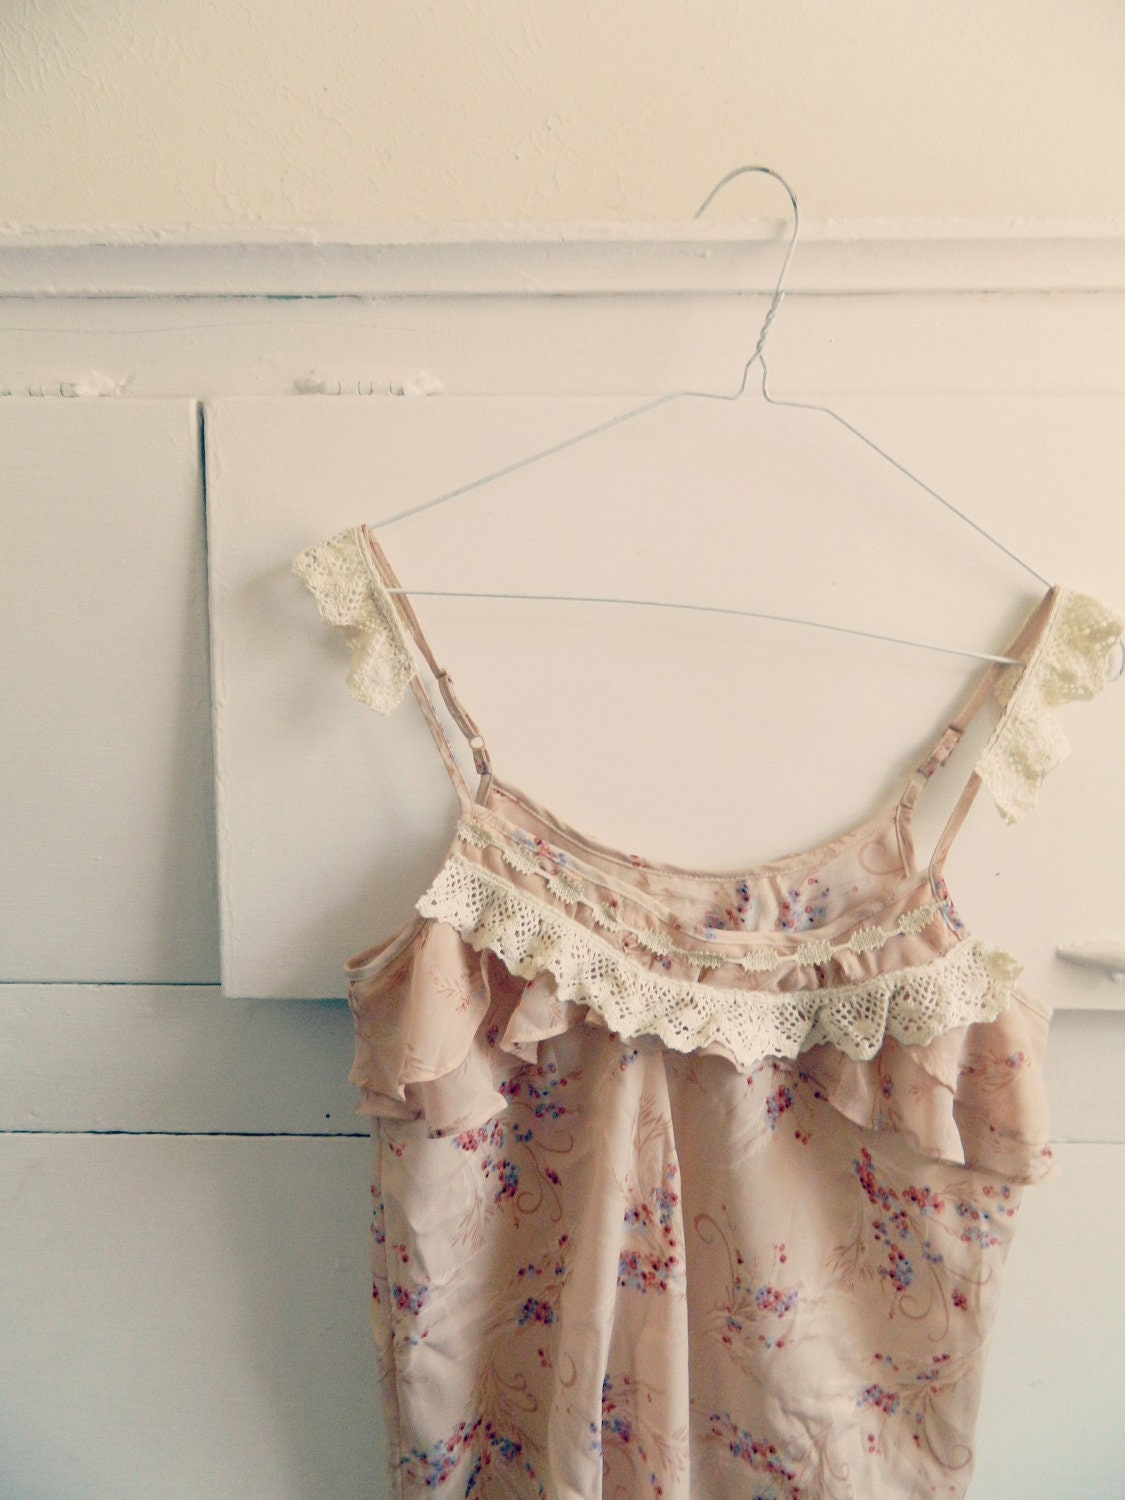 Antique lace and ruffle tank camisole, silk and beige, upcycyled clothing - RecycledFabric